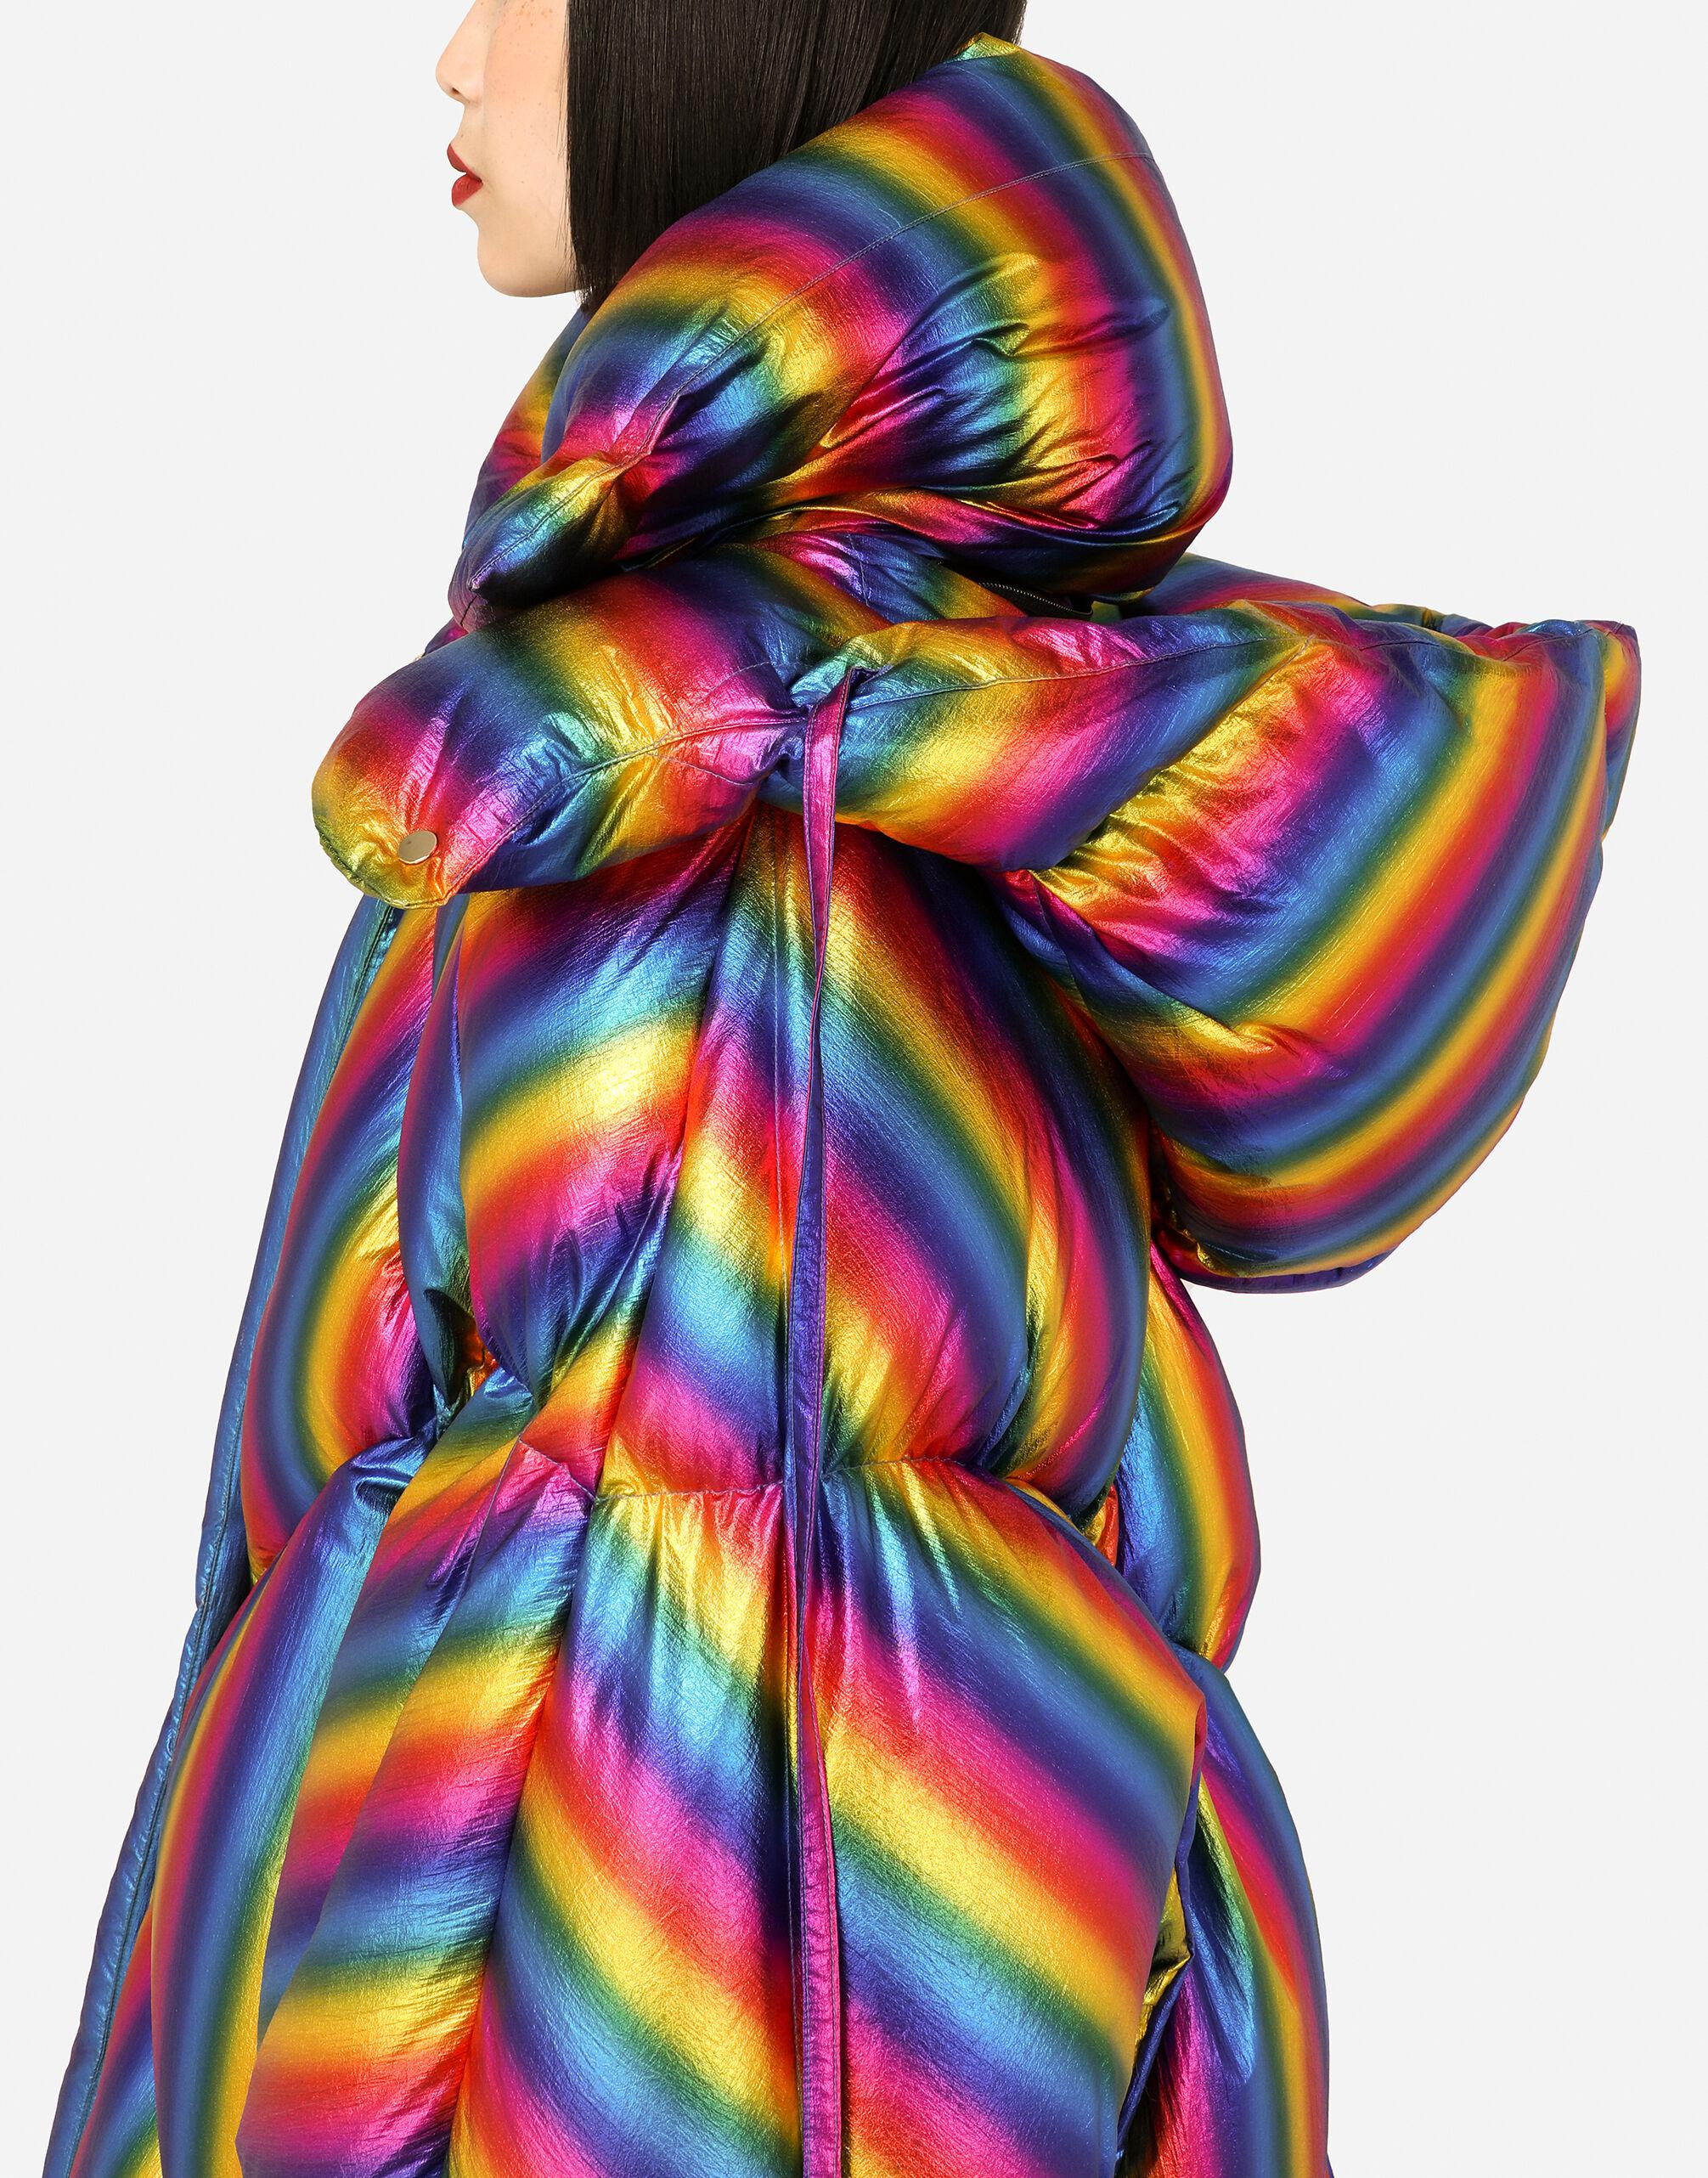 Foiled nylon down jacket with multi-colored stripes 6